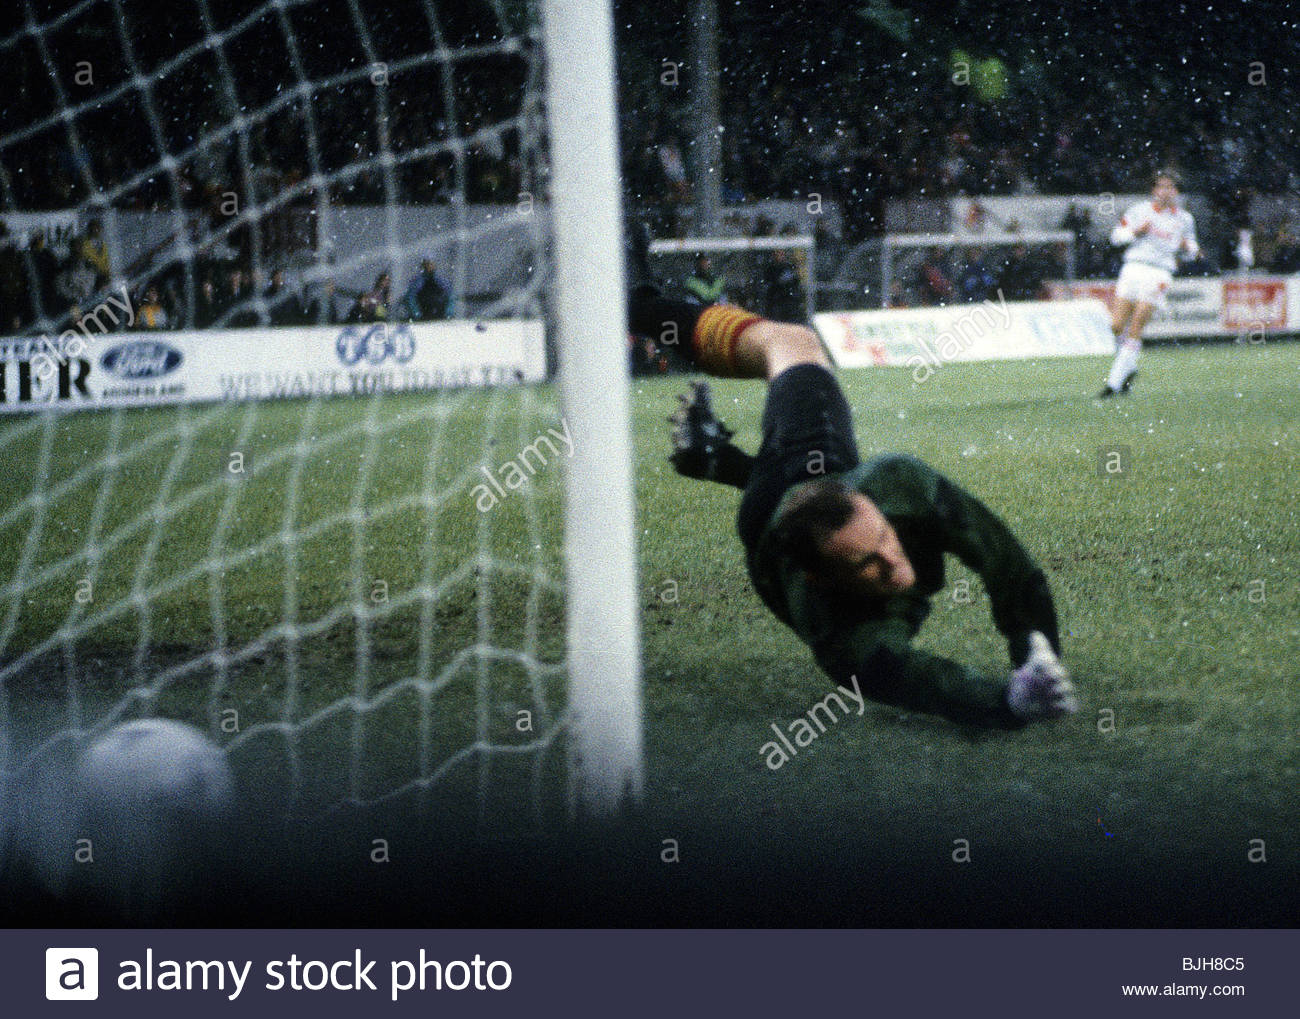 21/11/92 PARTICK THISTLE V ABERDEEN 0-2) FIR HILL - GLASGOW Partick goalkeeper Andy Murdoch fails to stop a strike - Stock Image